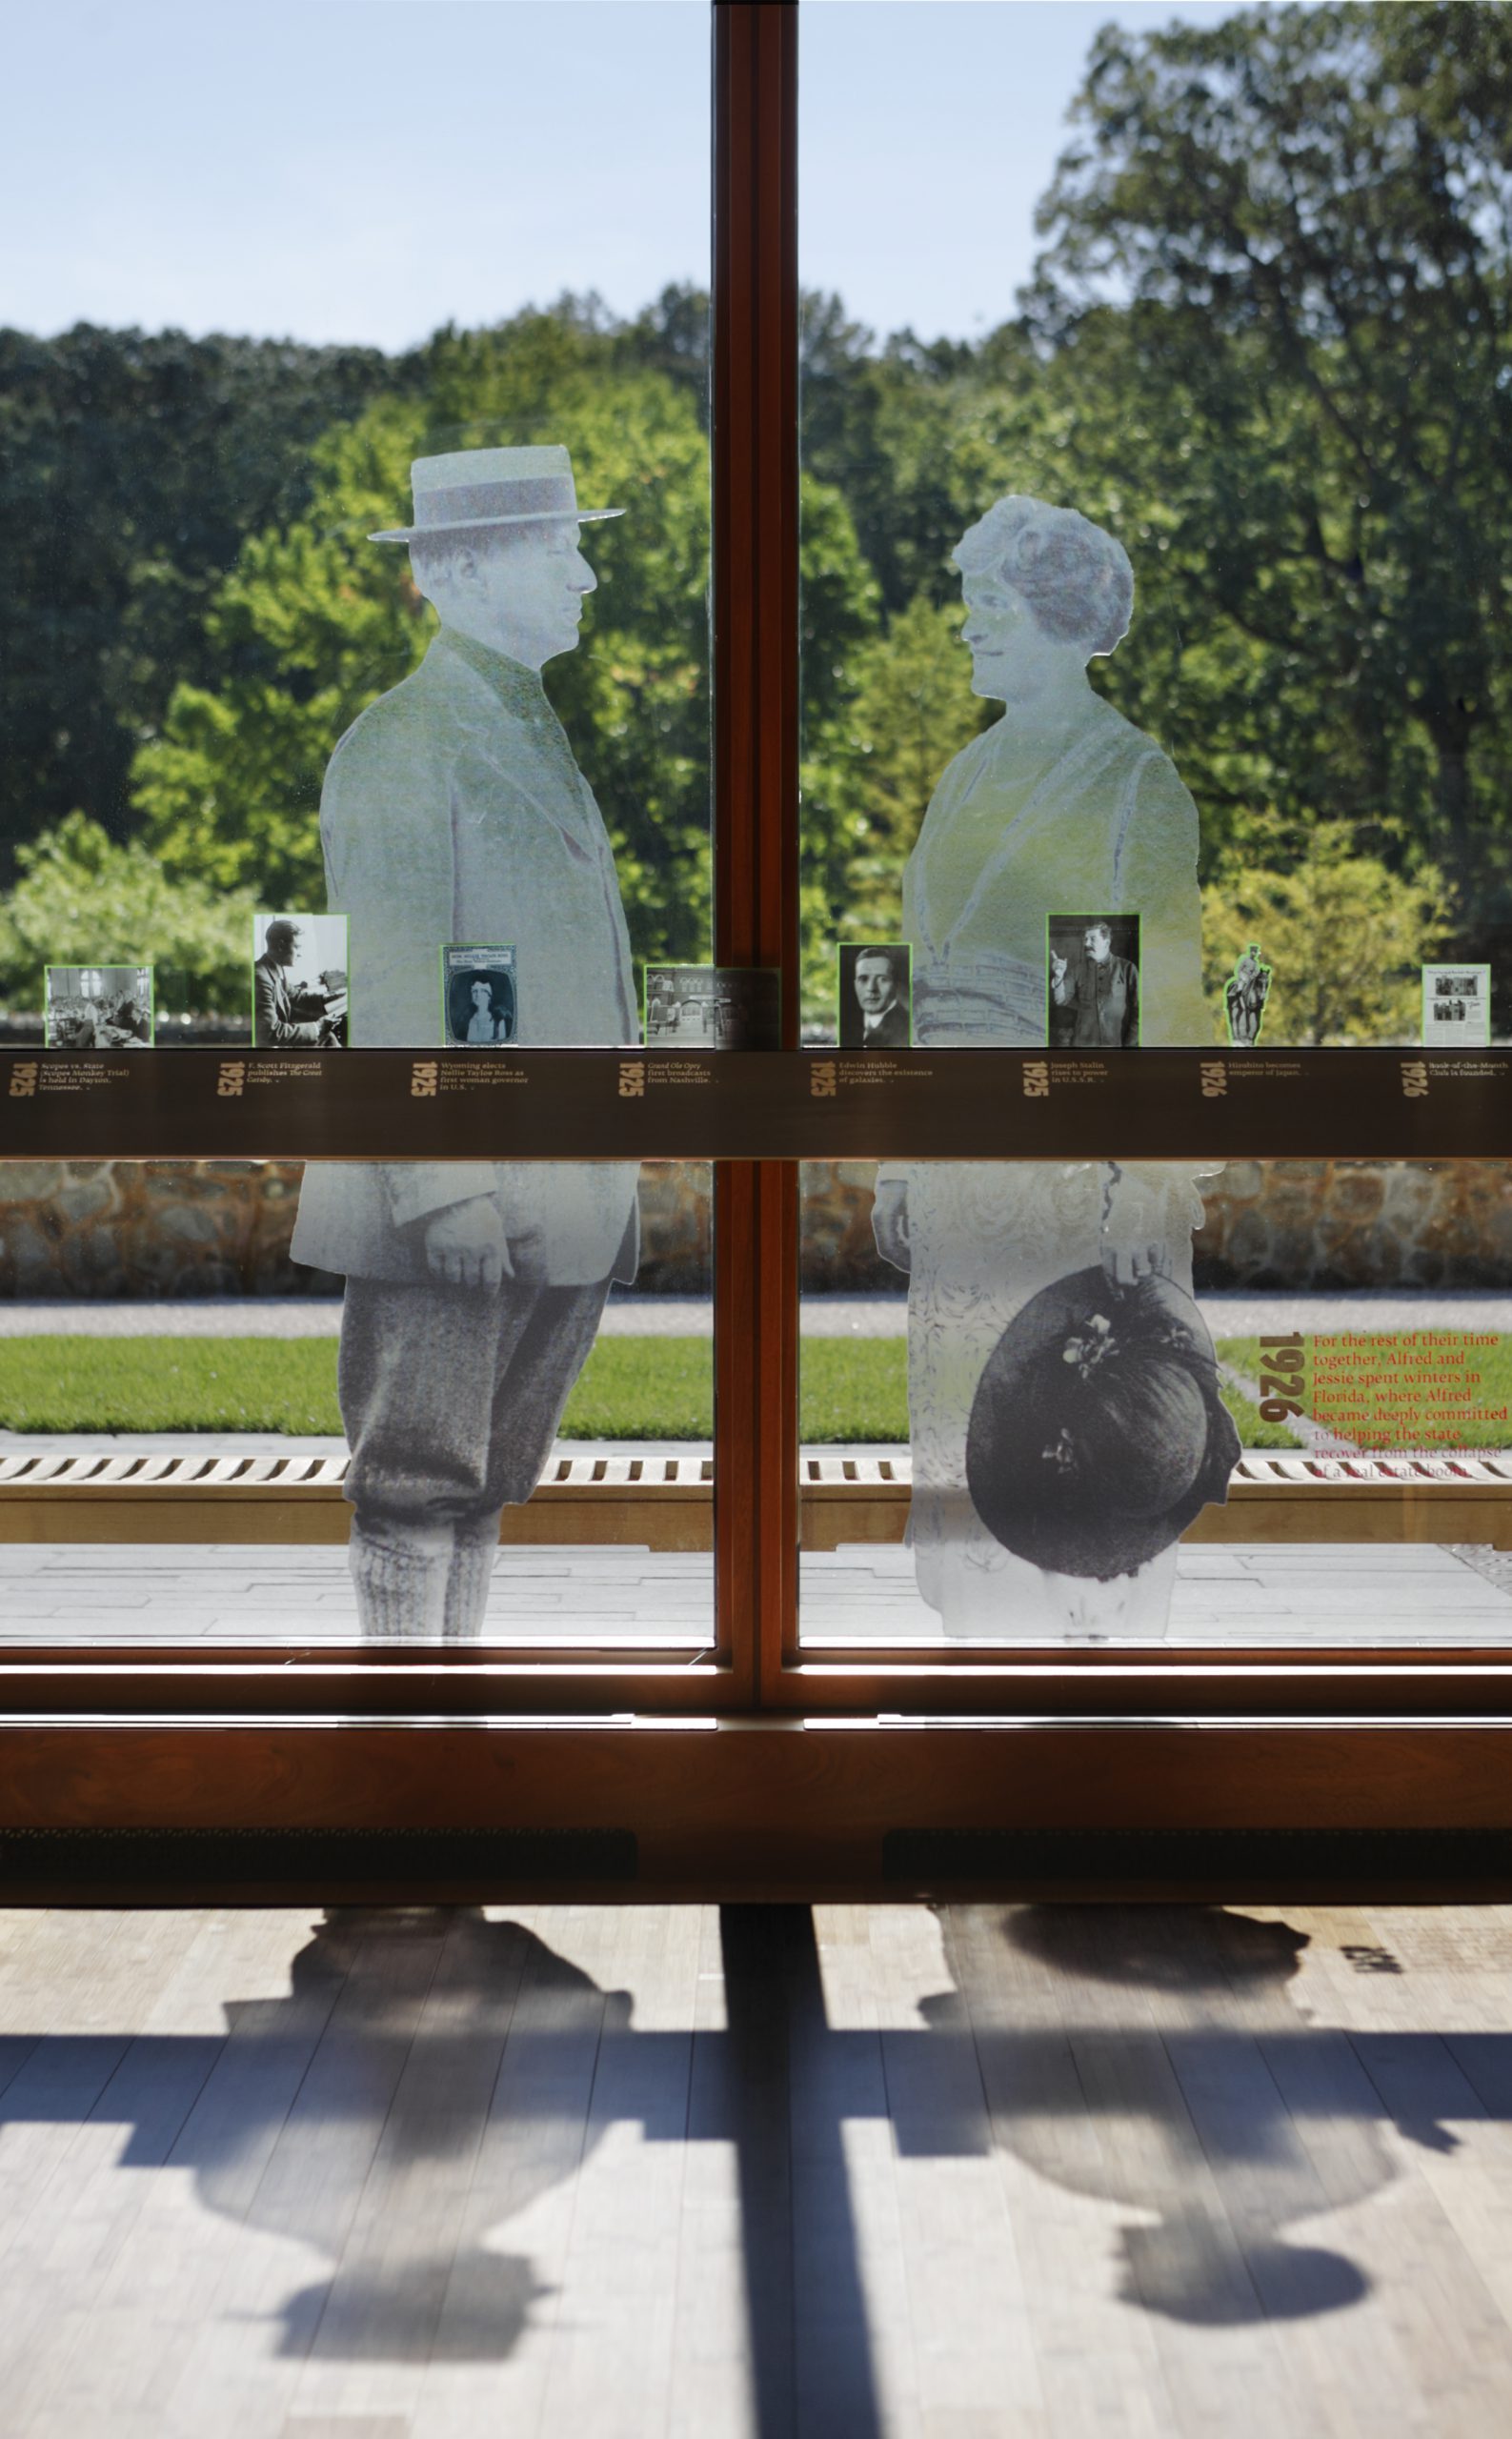 Project image 3 for Visitor Center Exhibits, Nemours Mansion & Gardens